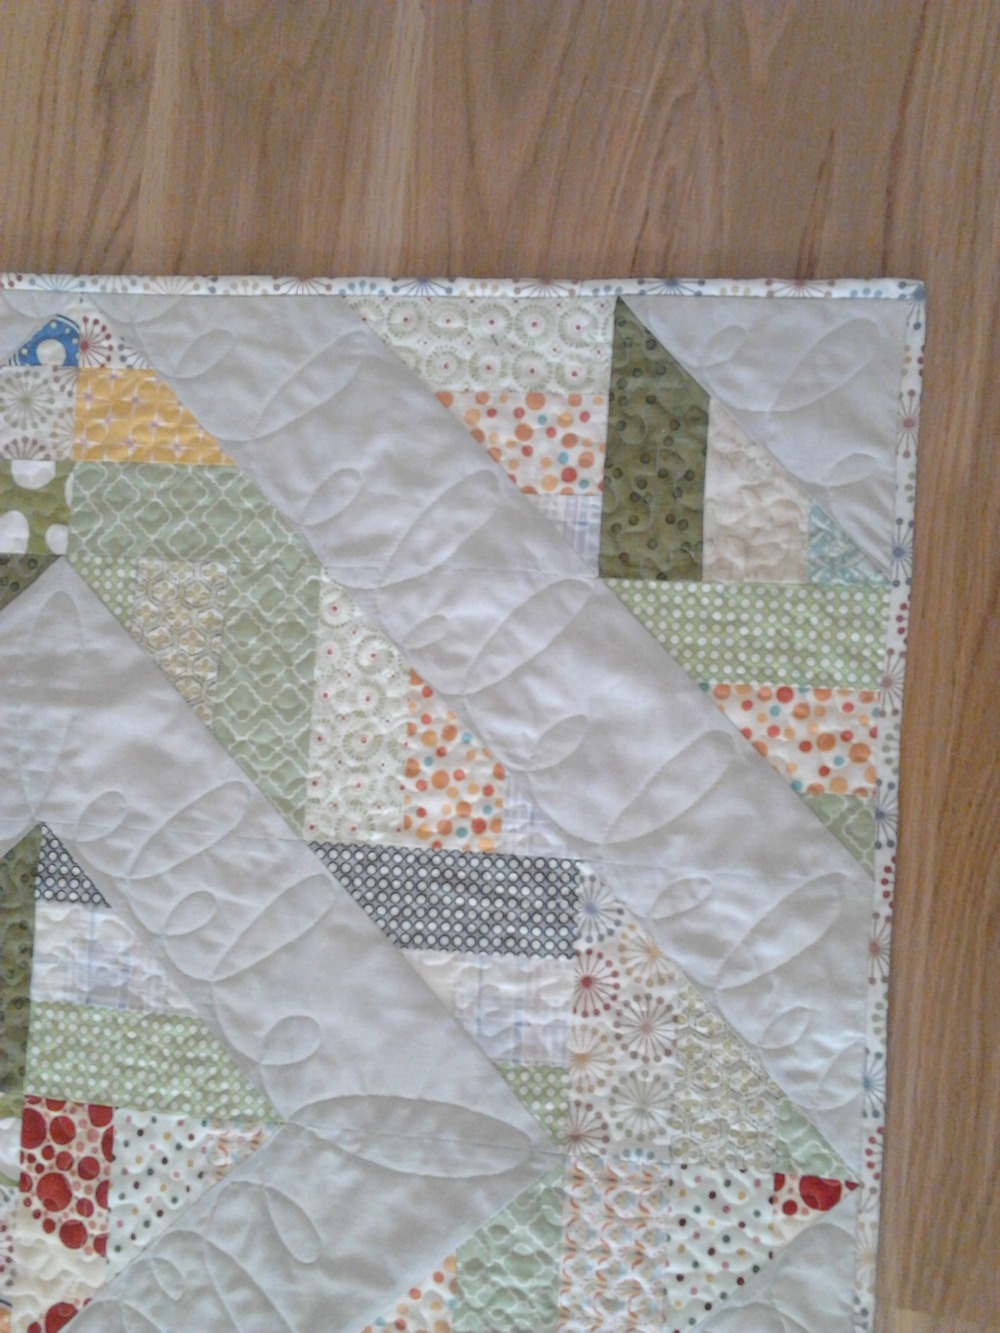 stitch quilt knit: Bunny Baby Quilt